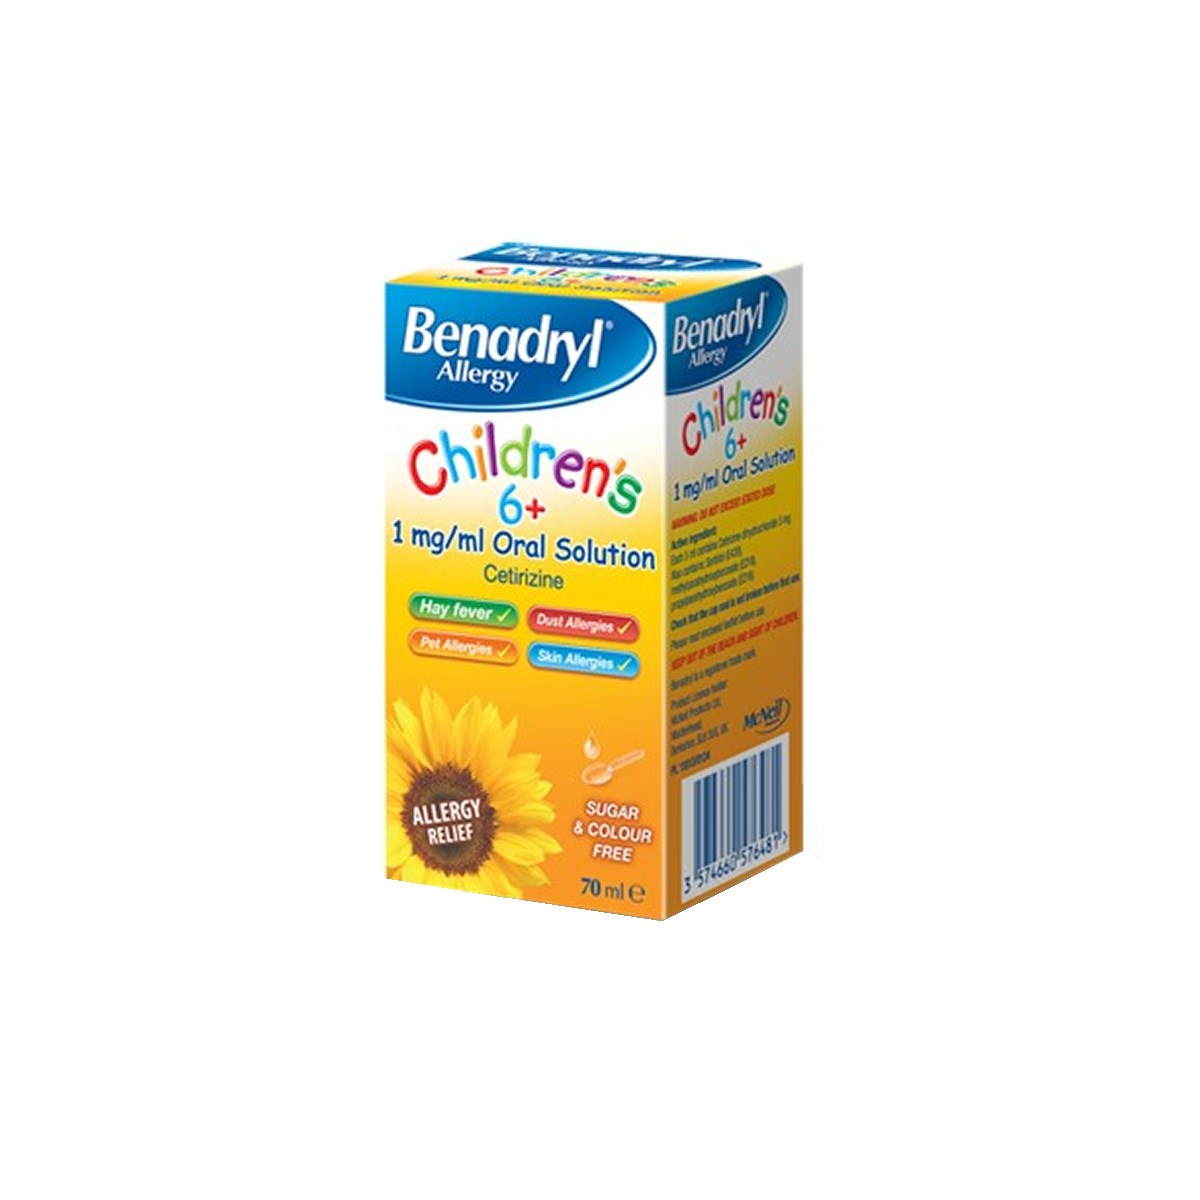 Benadryl Allergy Children's 6+ 1mg/ml Oral Solution